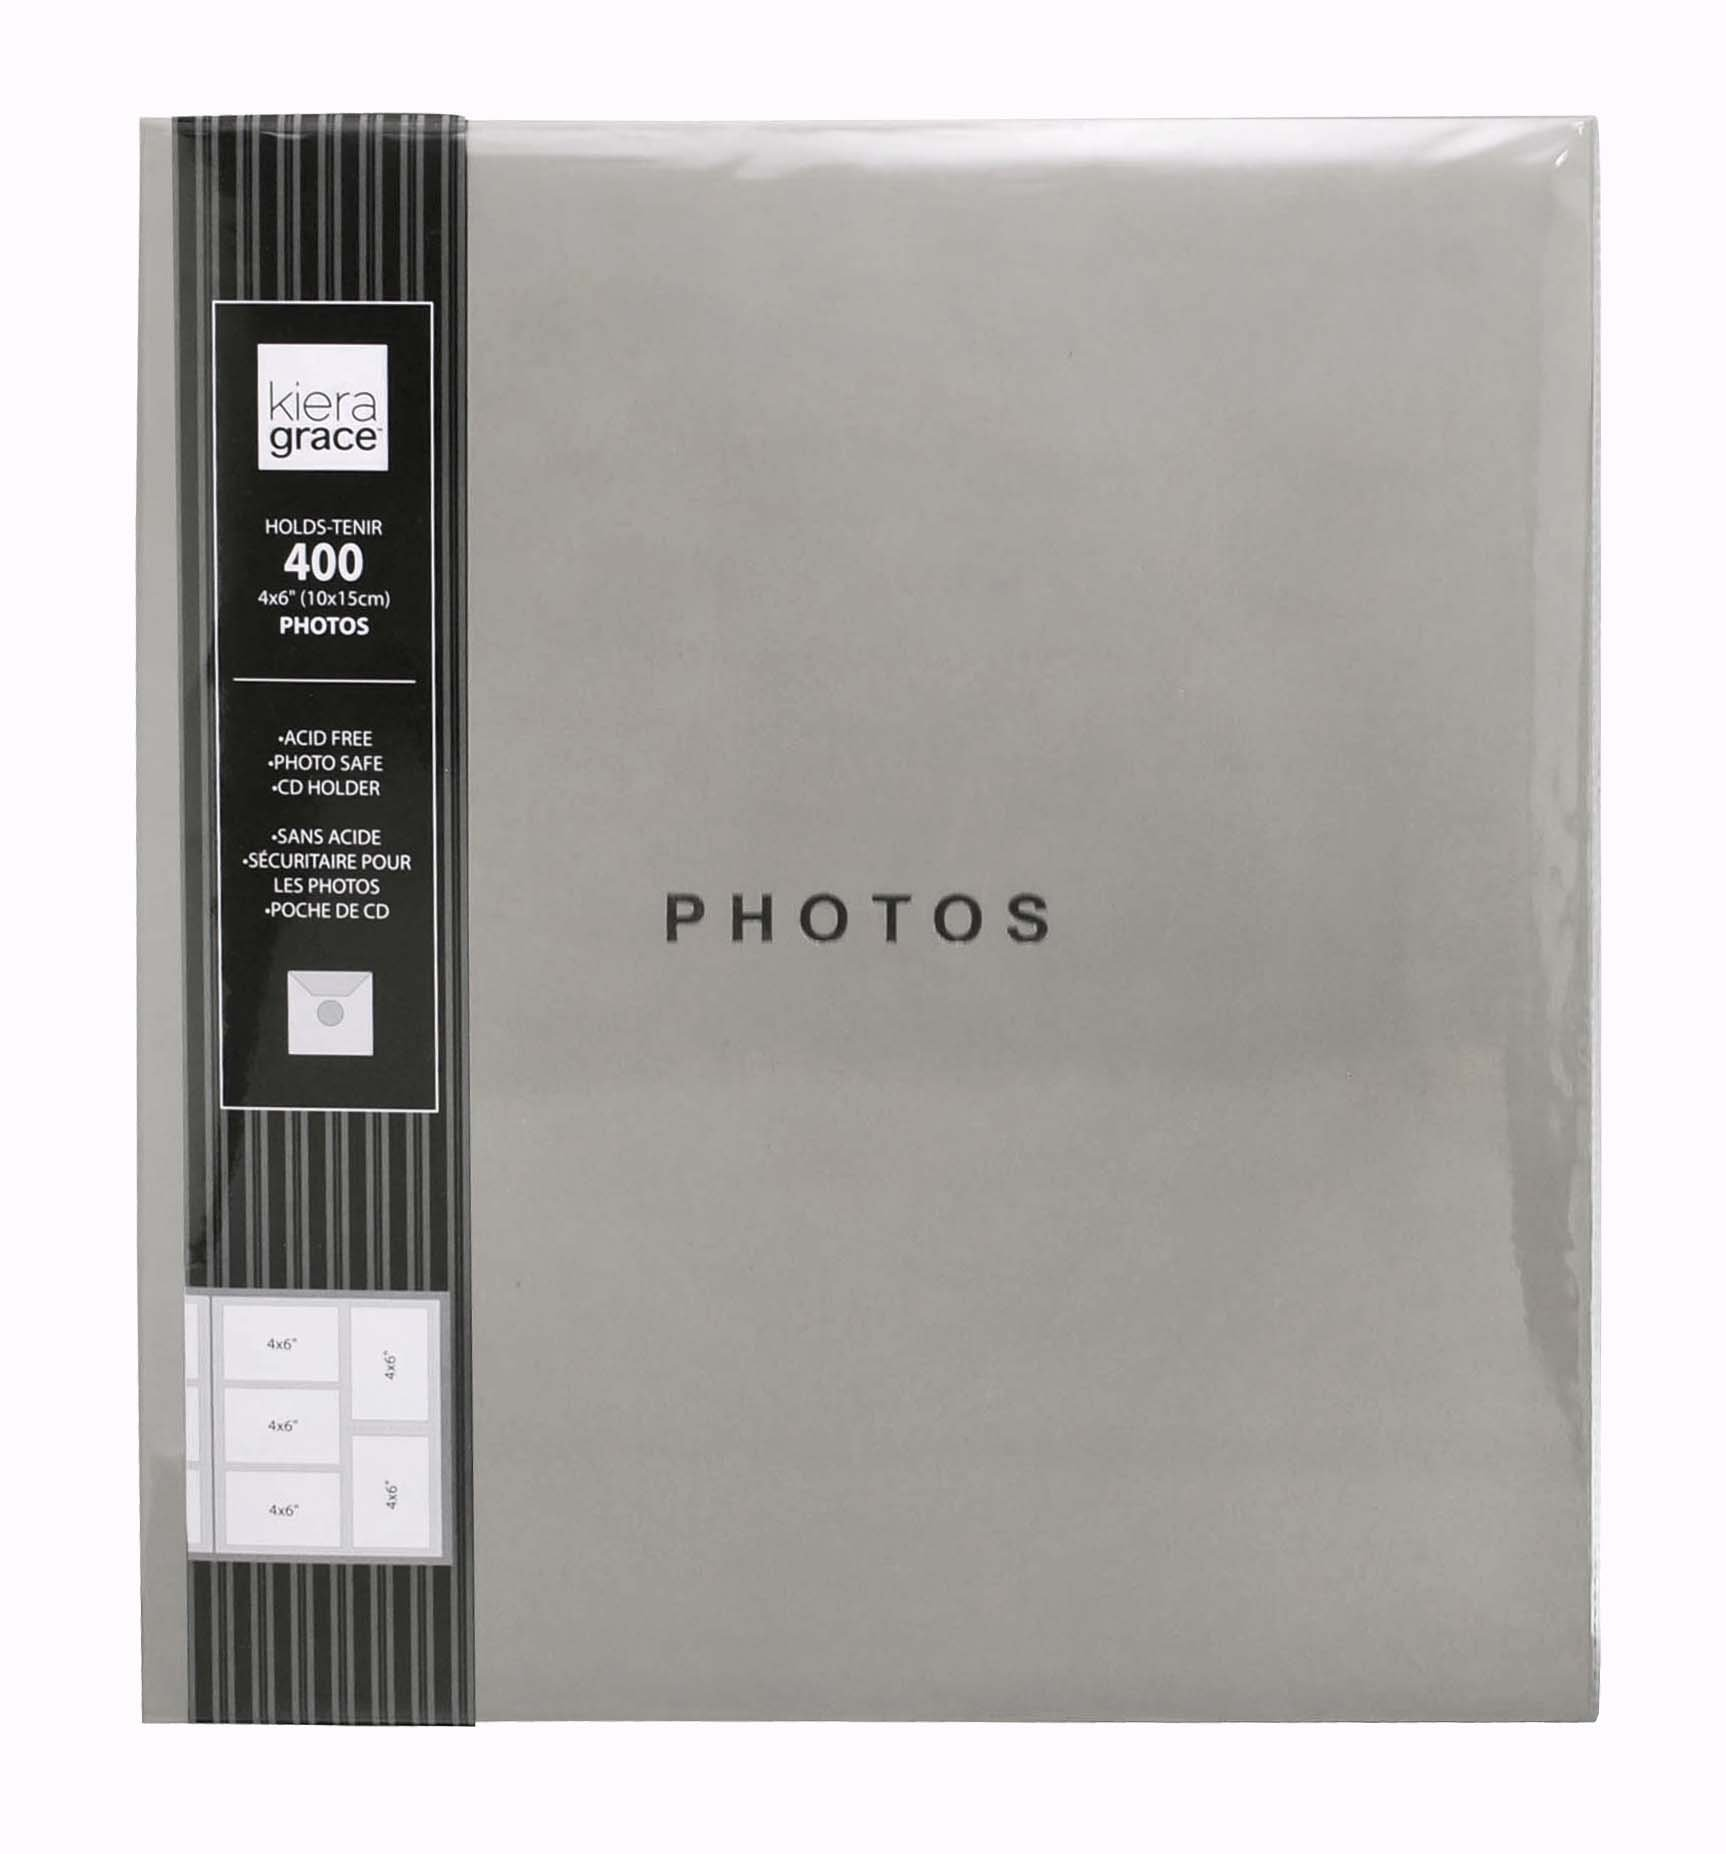 Kiera Grace Photo Album, Holds 400 4 by 6-Inch Photos, Cool Gray